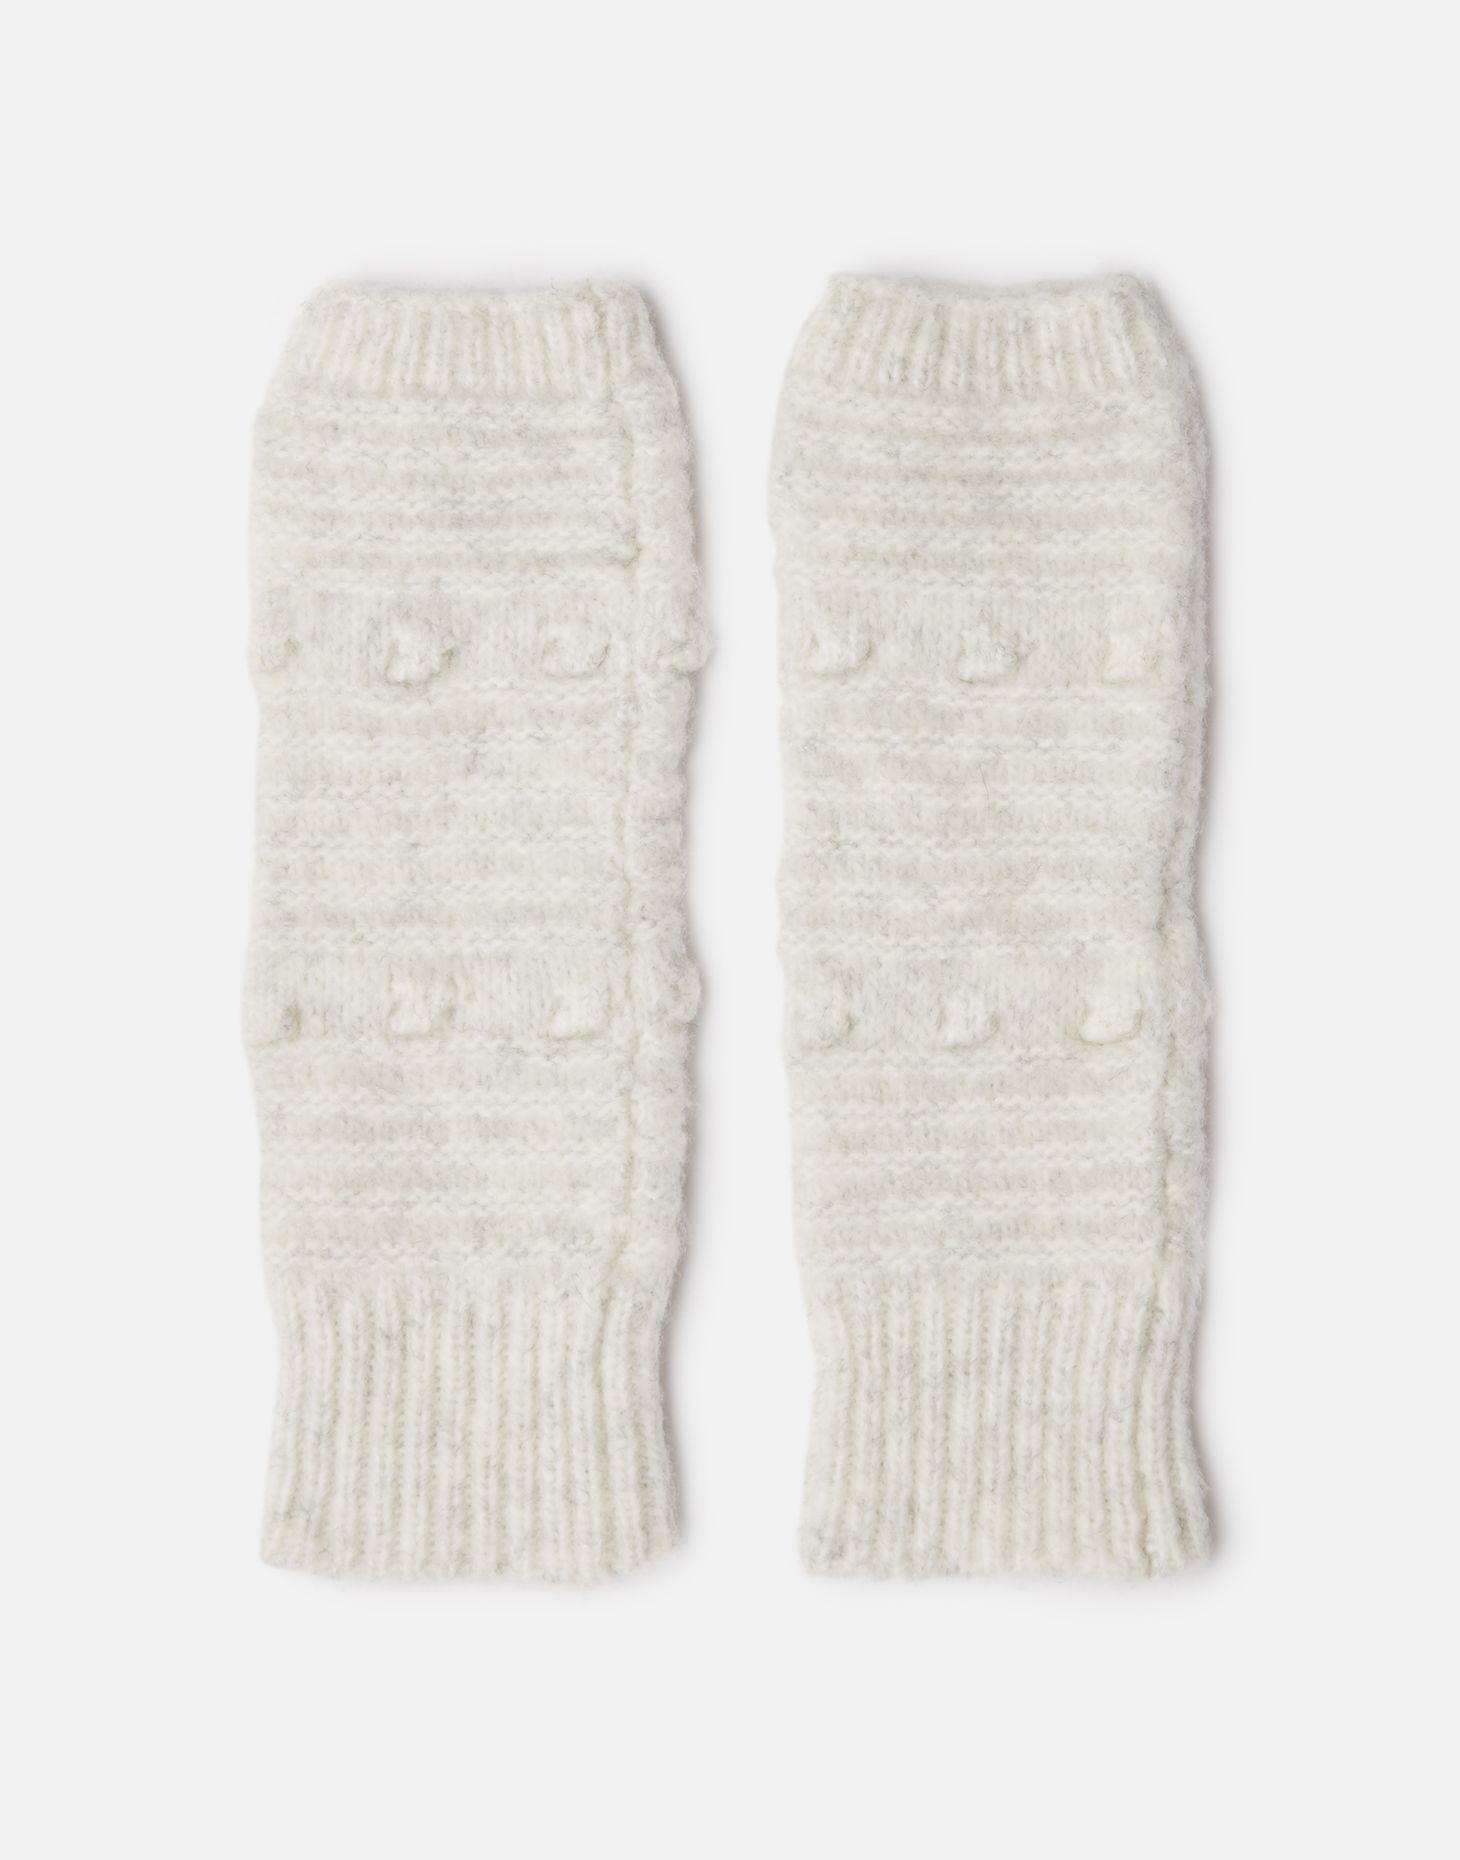 Joules Womens Flurrywell Knitted Scarf ONE in LIGHT GREY MARL in One Size